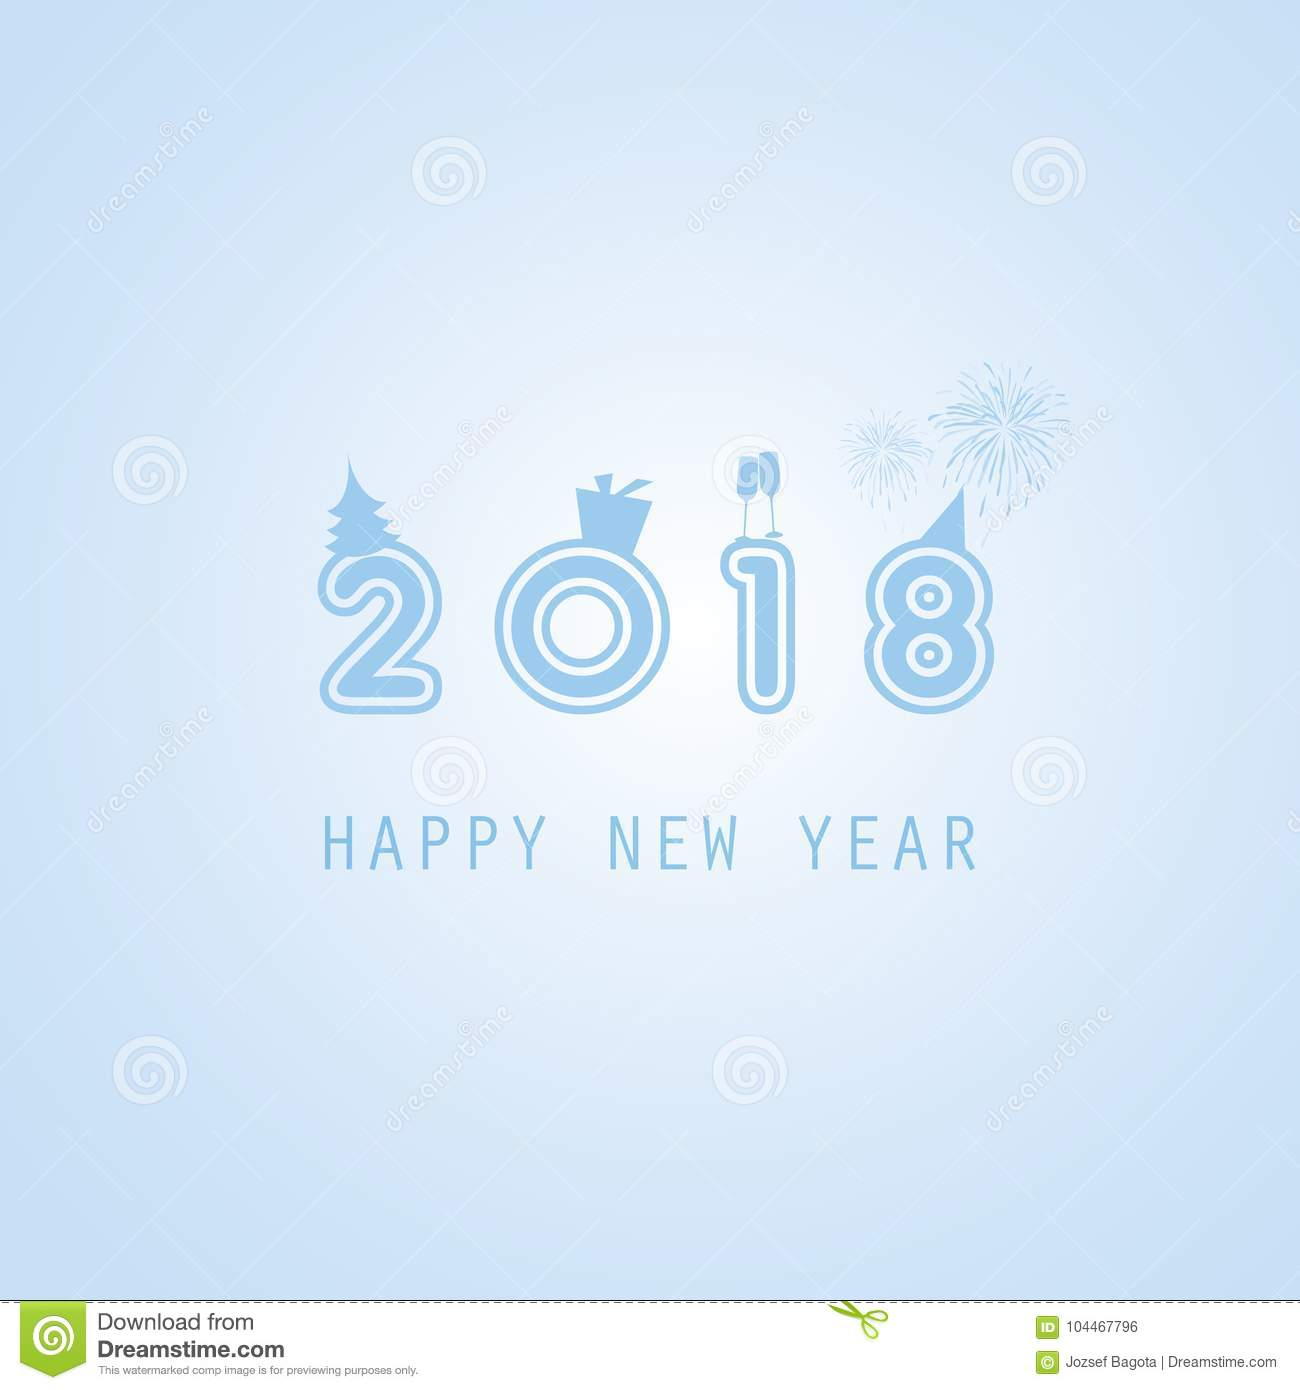 download best wishes abstract colorful modern styled new year card cover or background design